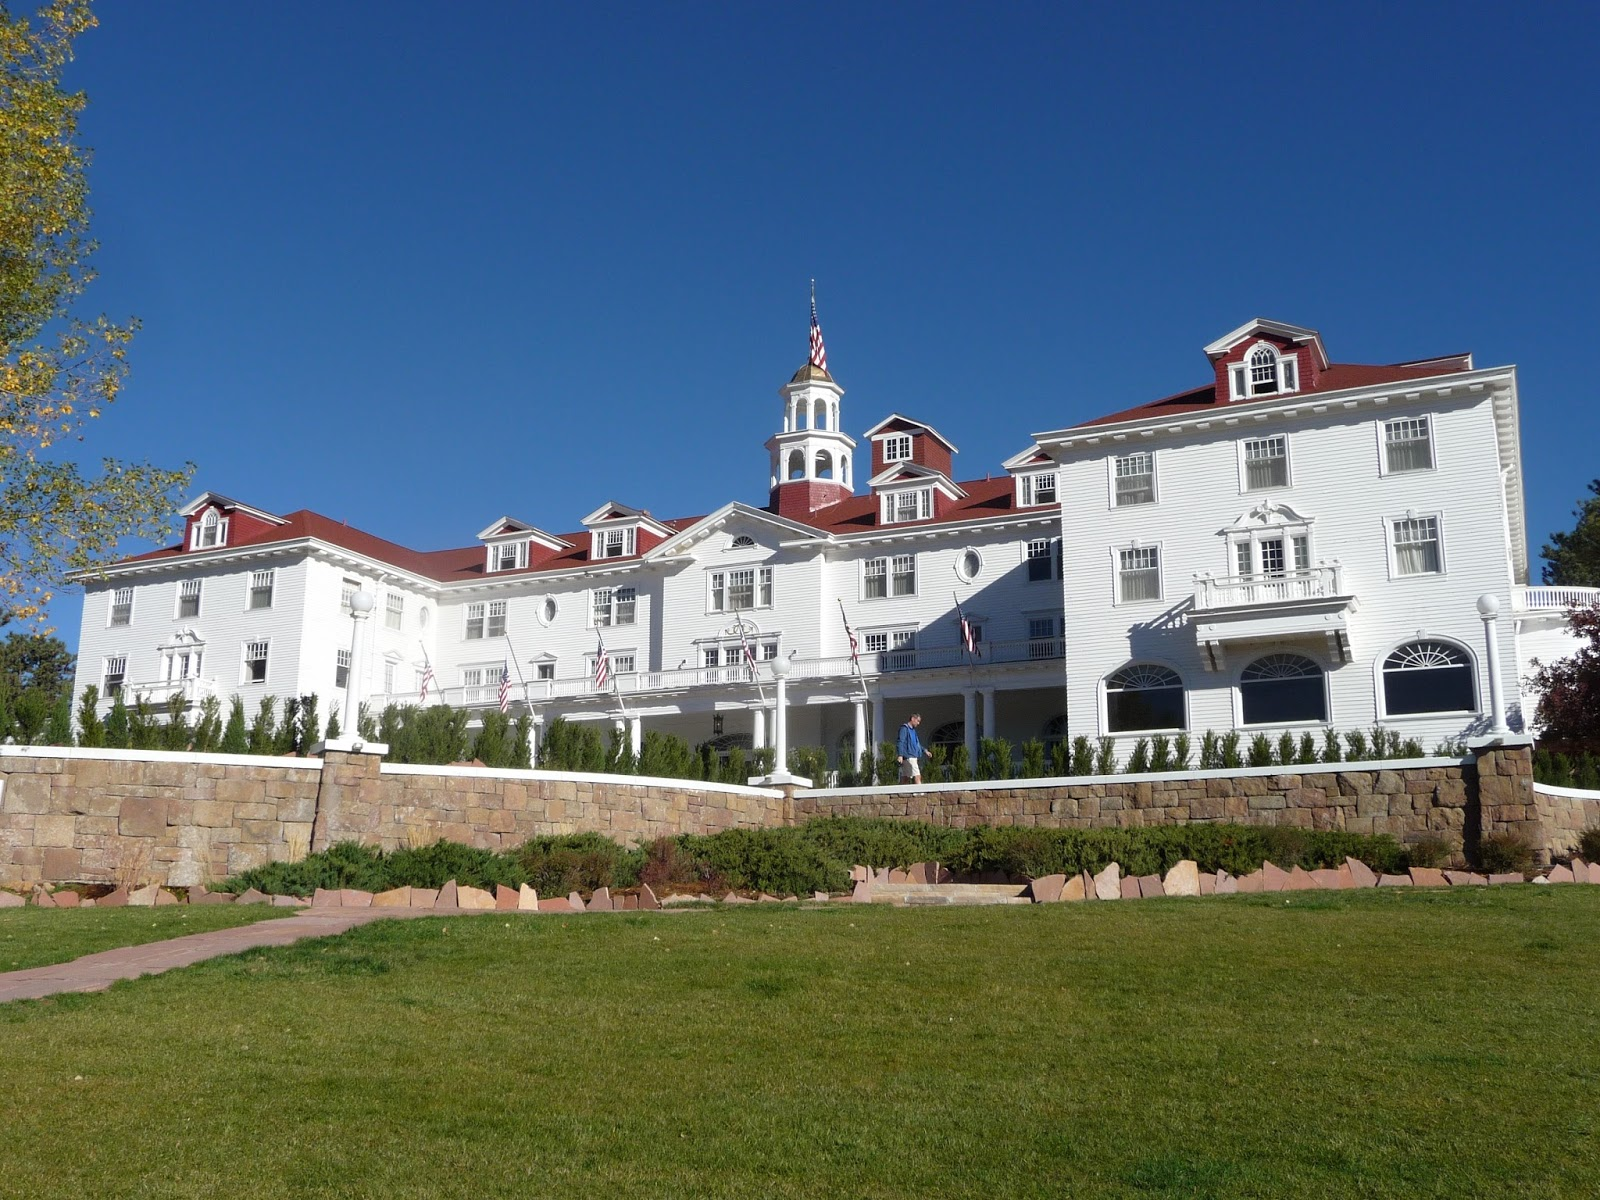 before we entered the park we made a little side trip in estes park to see the stanley hotel this historic hotel was the inspiration for stephen king s